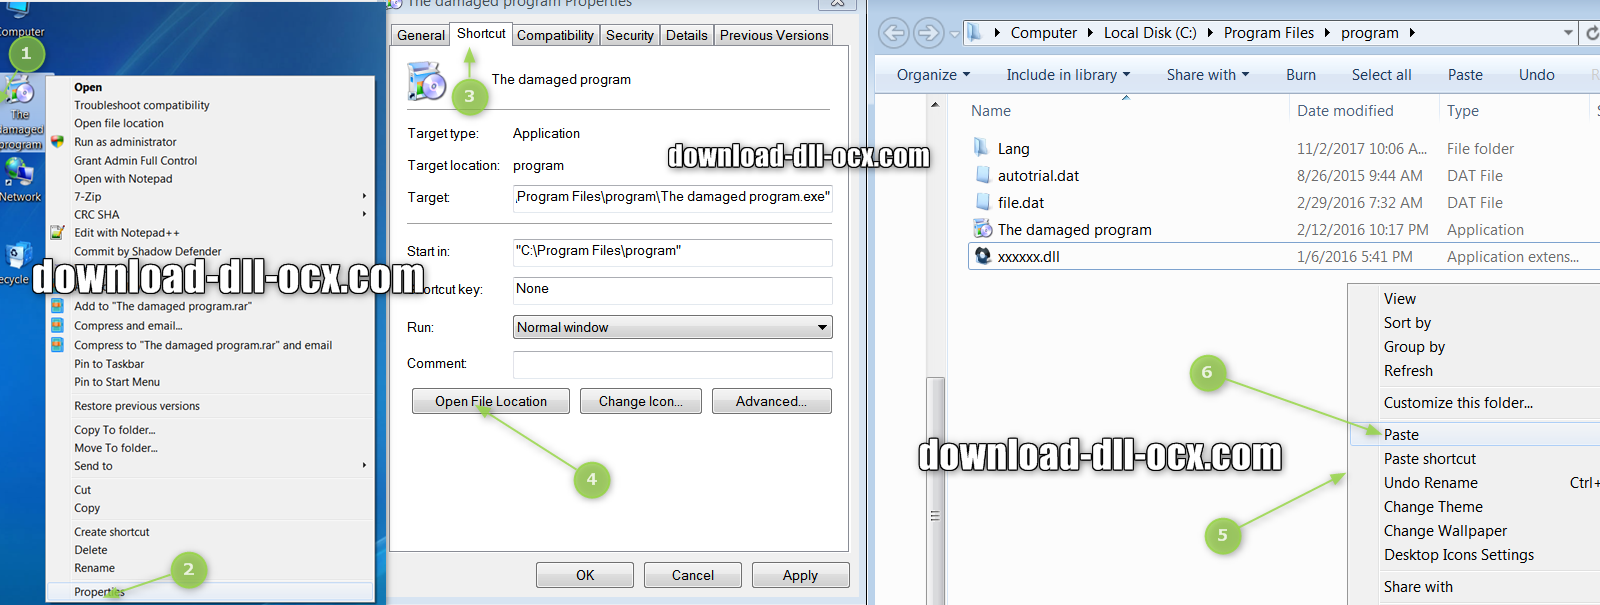 how to install u32prod.dll file? for fix missing